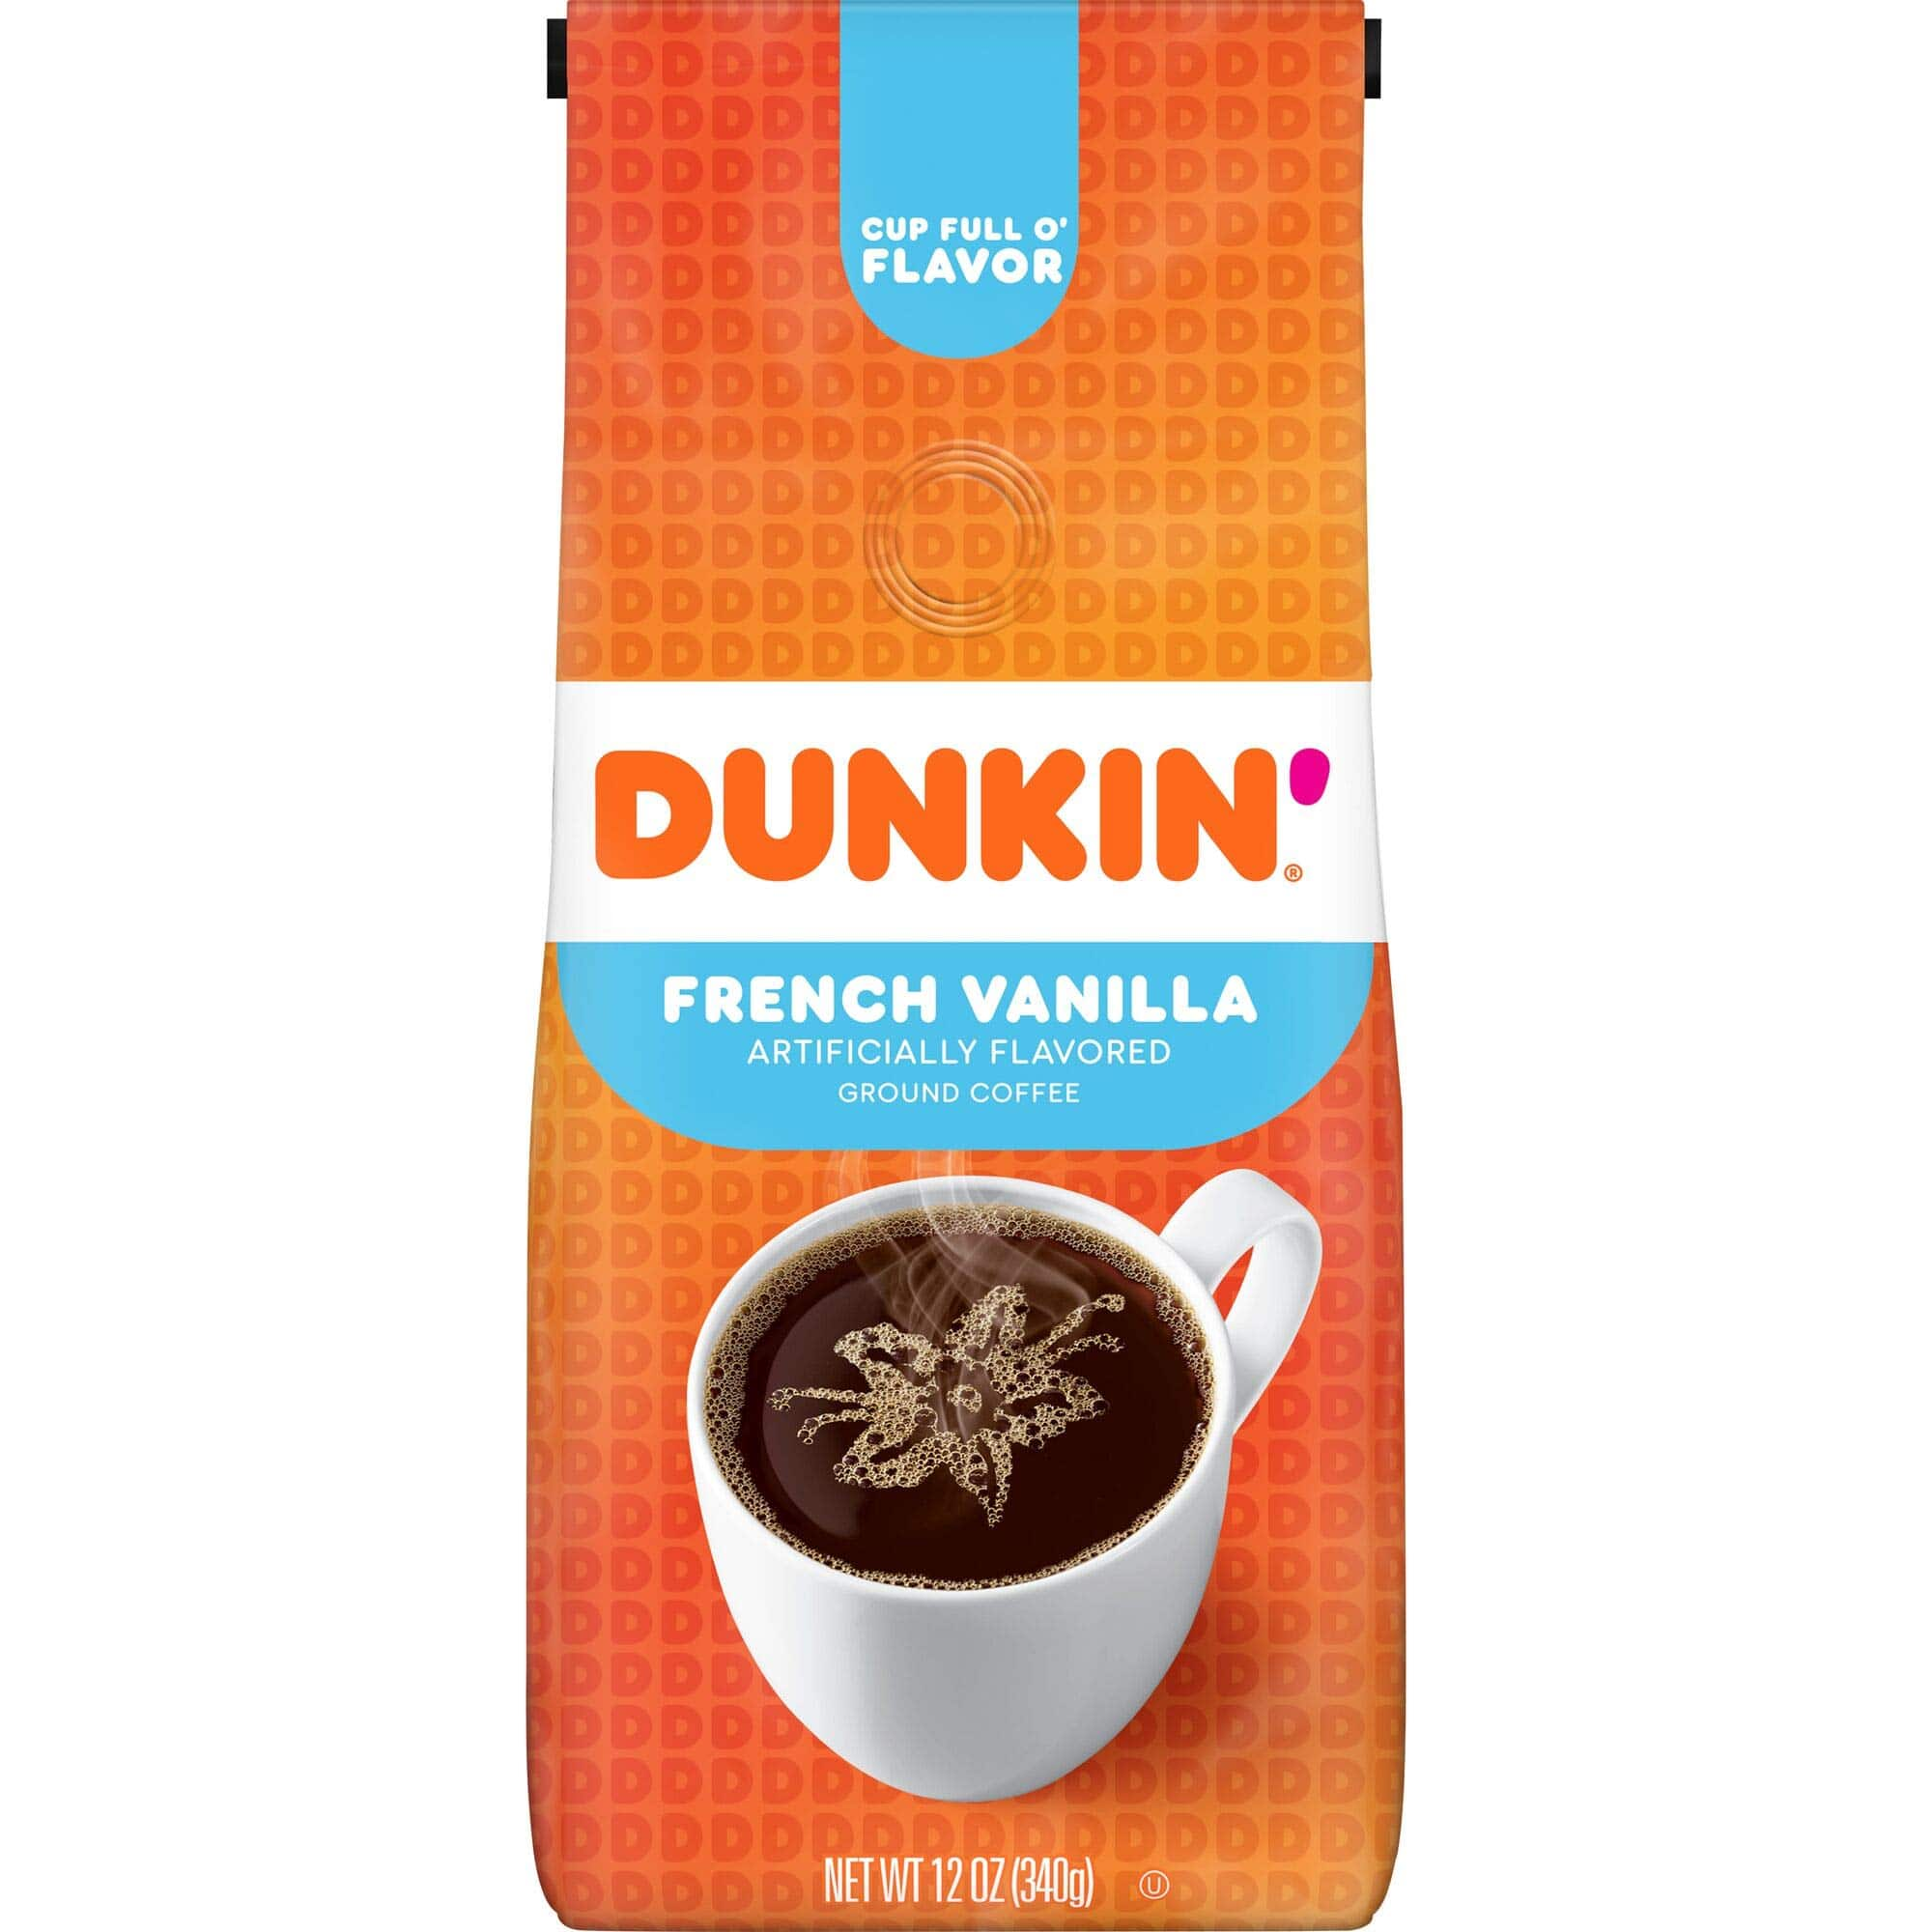 12-Oz Dunkin' Ground Coffee (French Vanilla) $3.41 w/ S&S + Free Shipping w/ Prime or on $25+